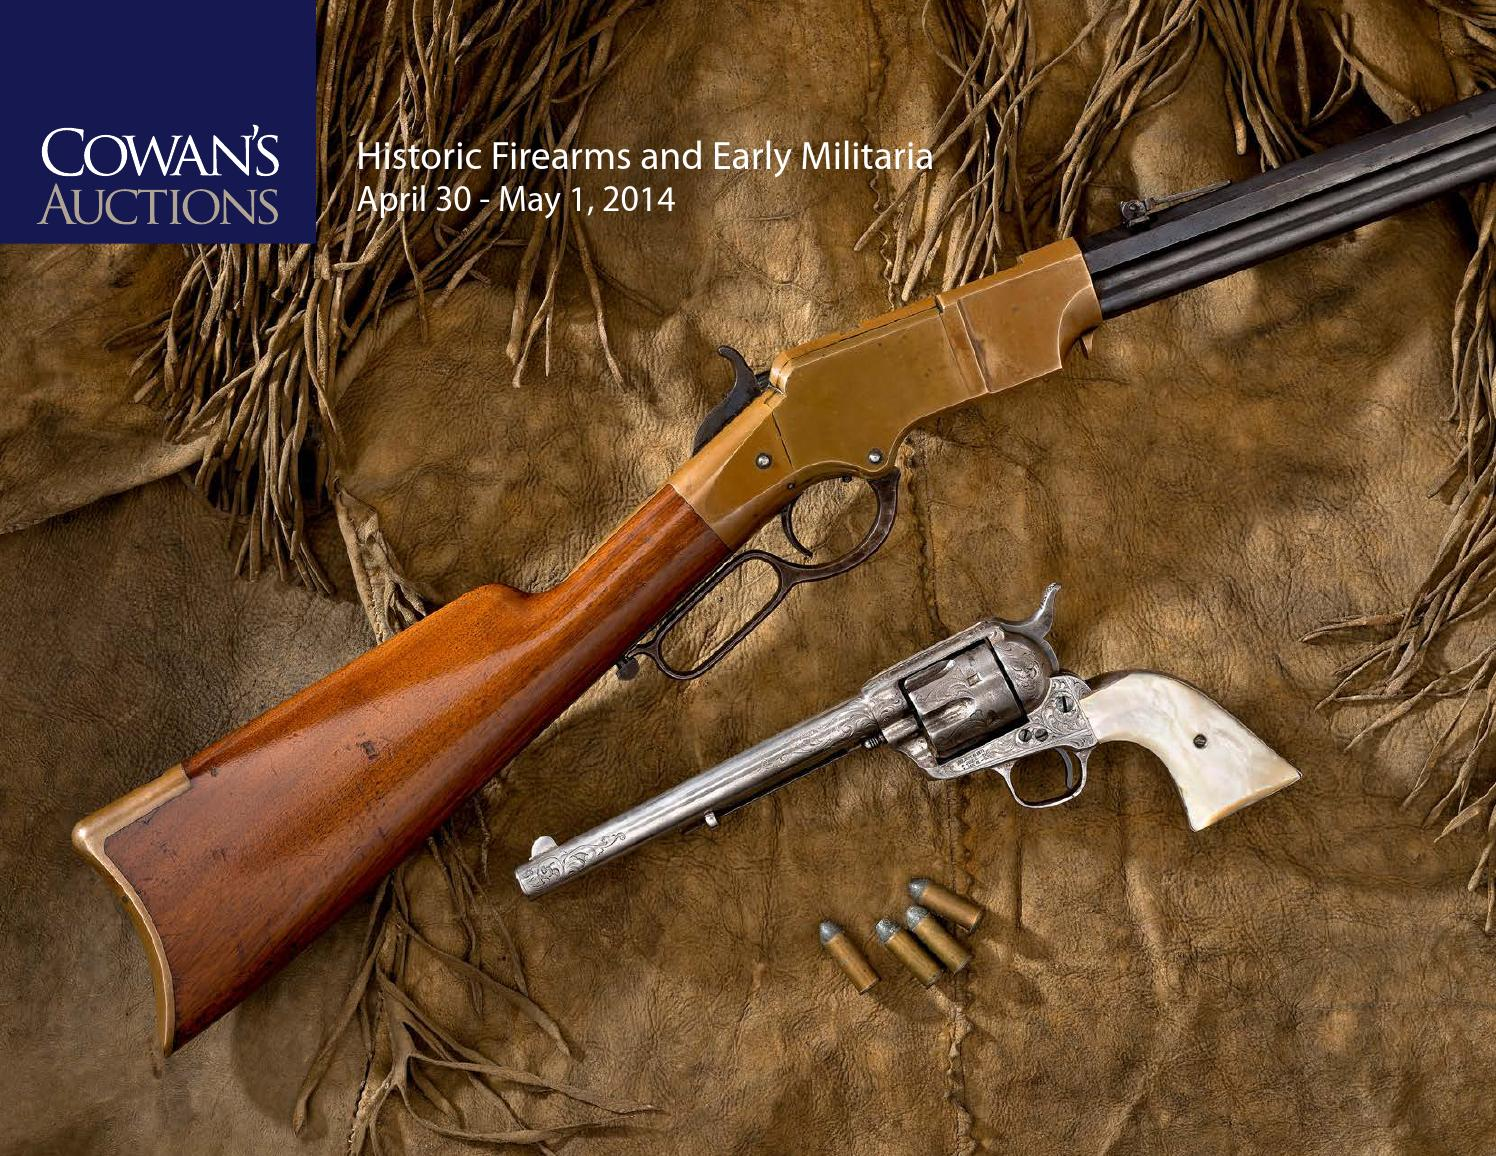 Auctions In Ohio >> Historic Firearms and Early Militaria by Cowan's Auctions ...